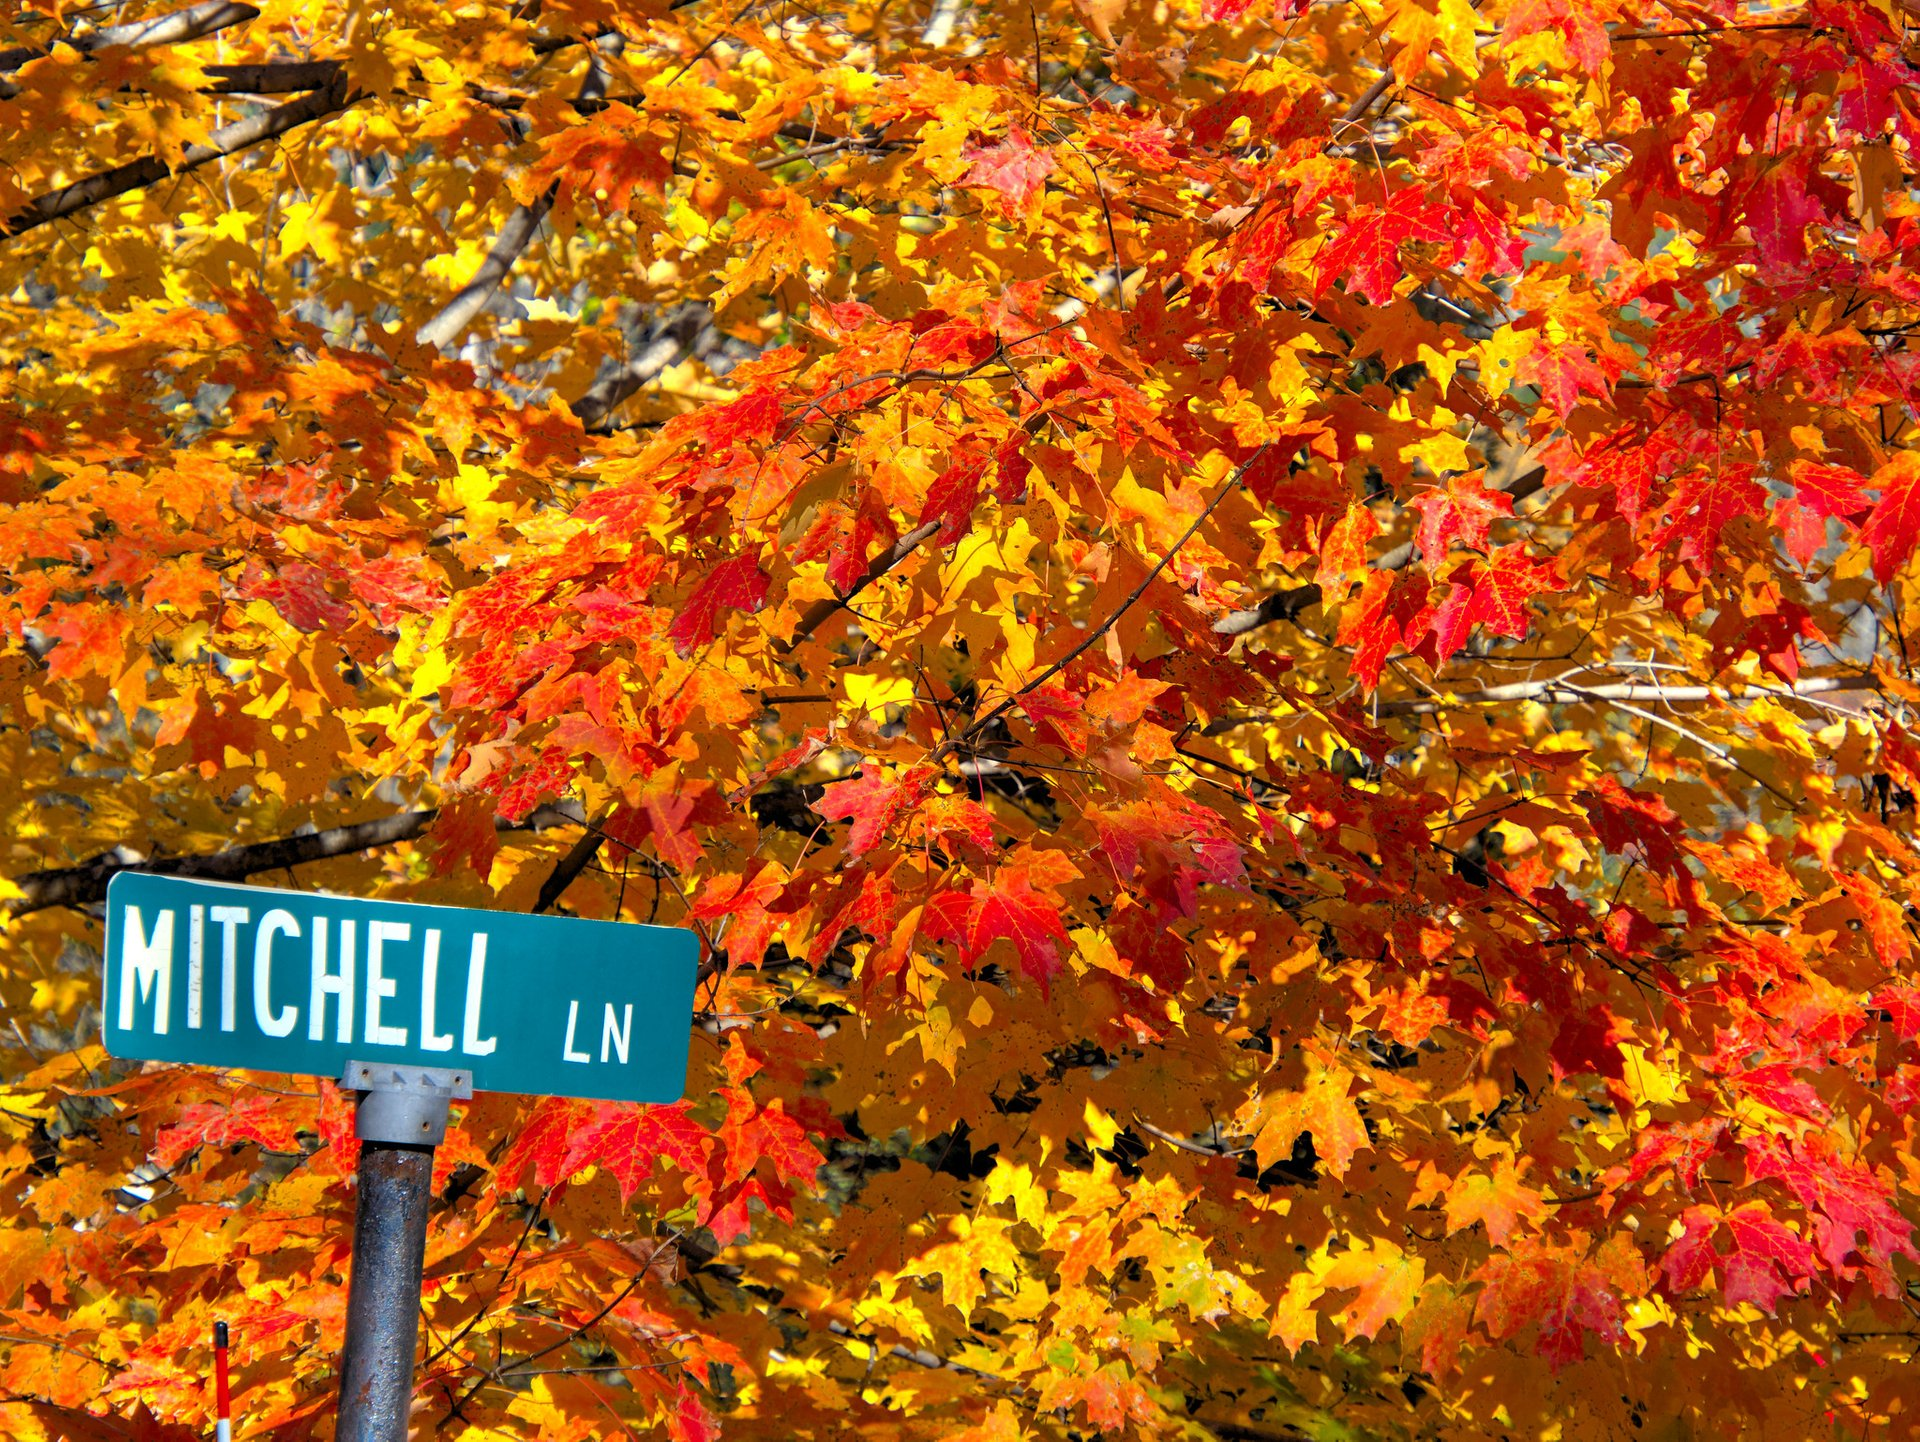 Mitchell Lane in Hanover, NH 2020